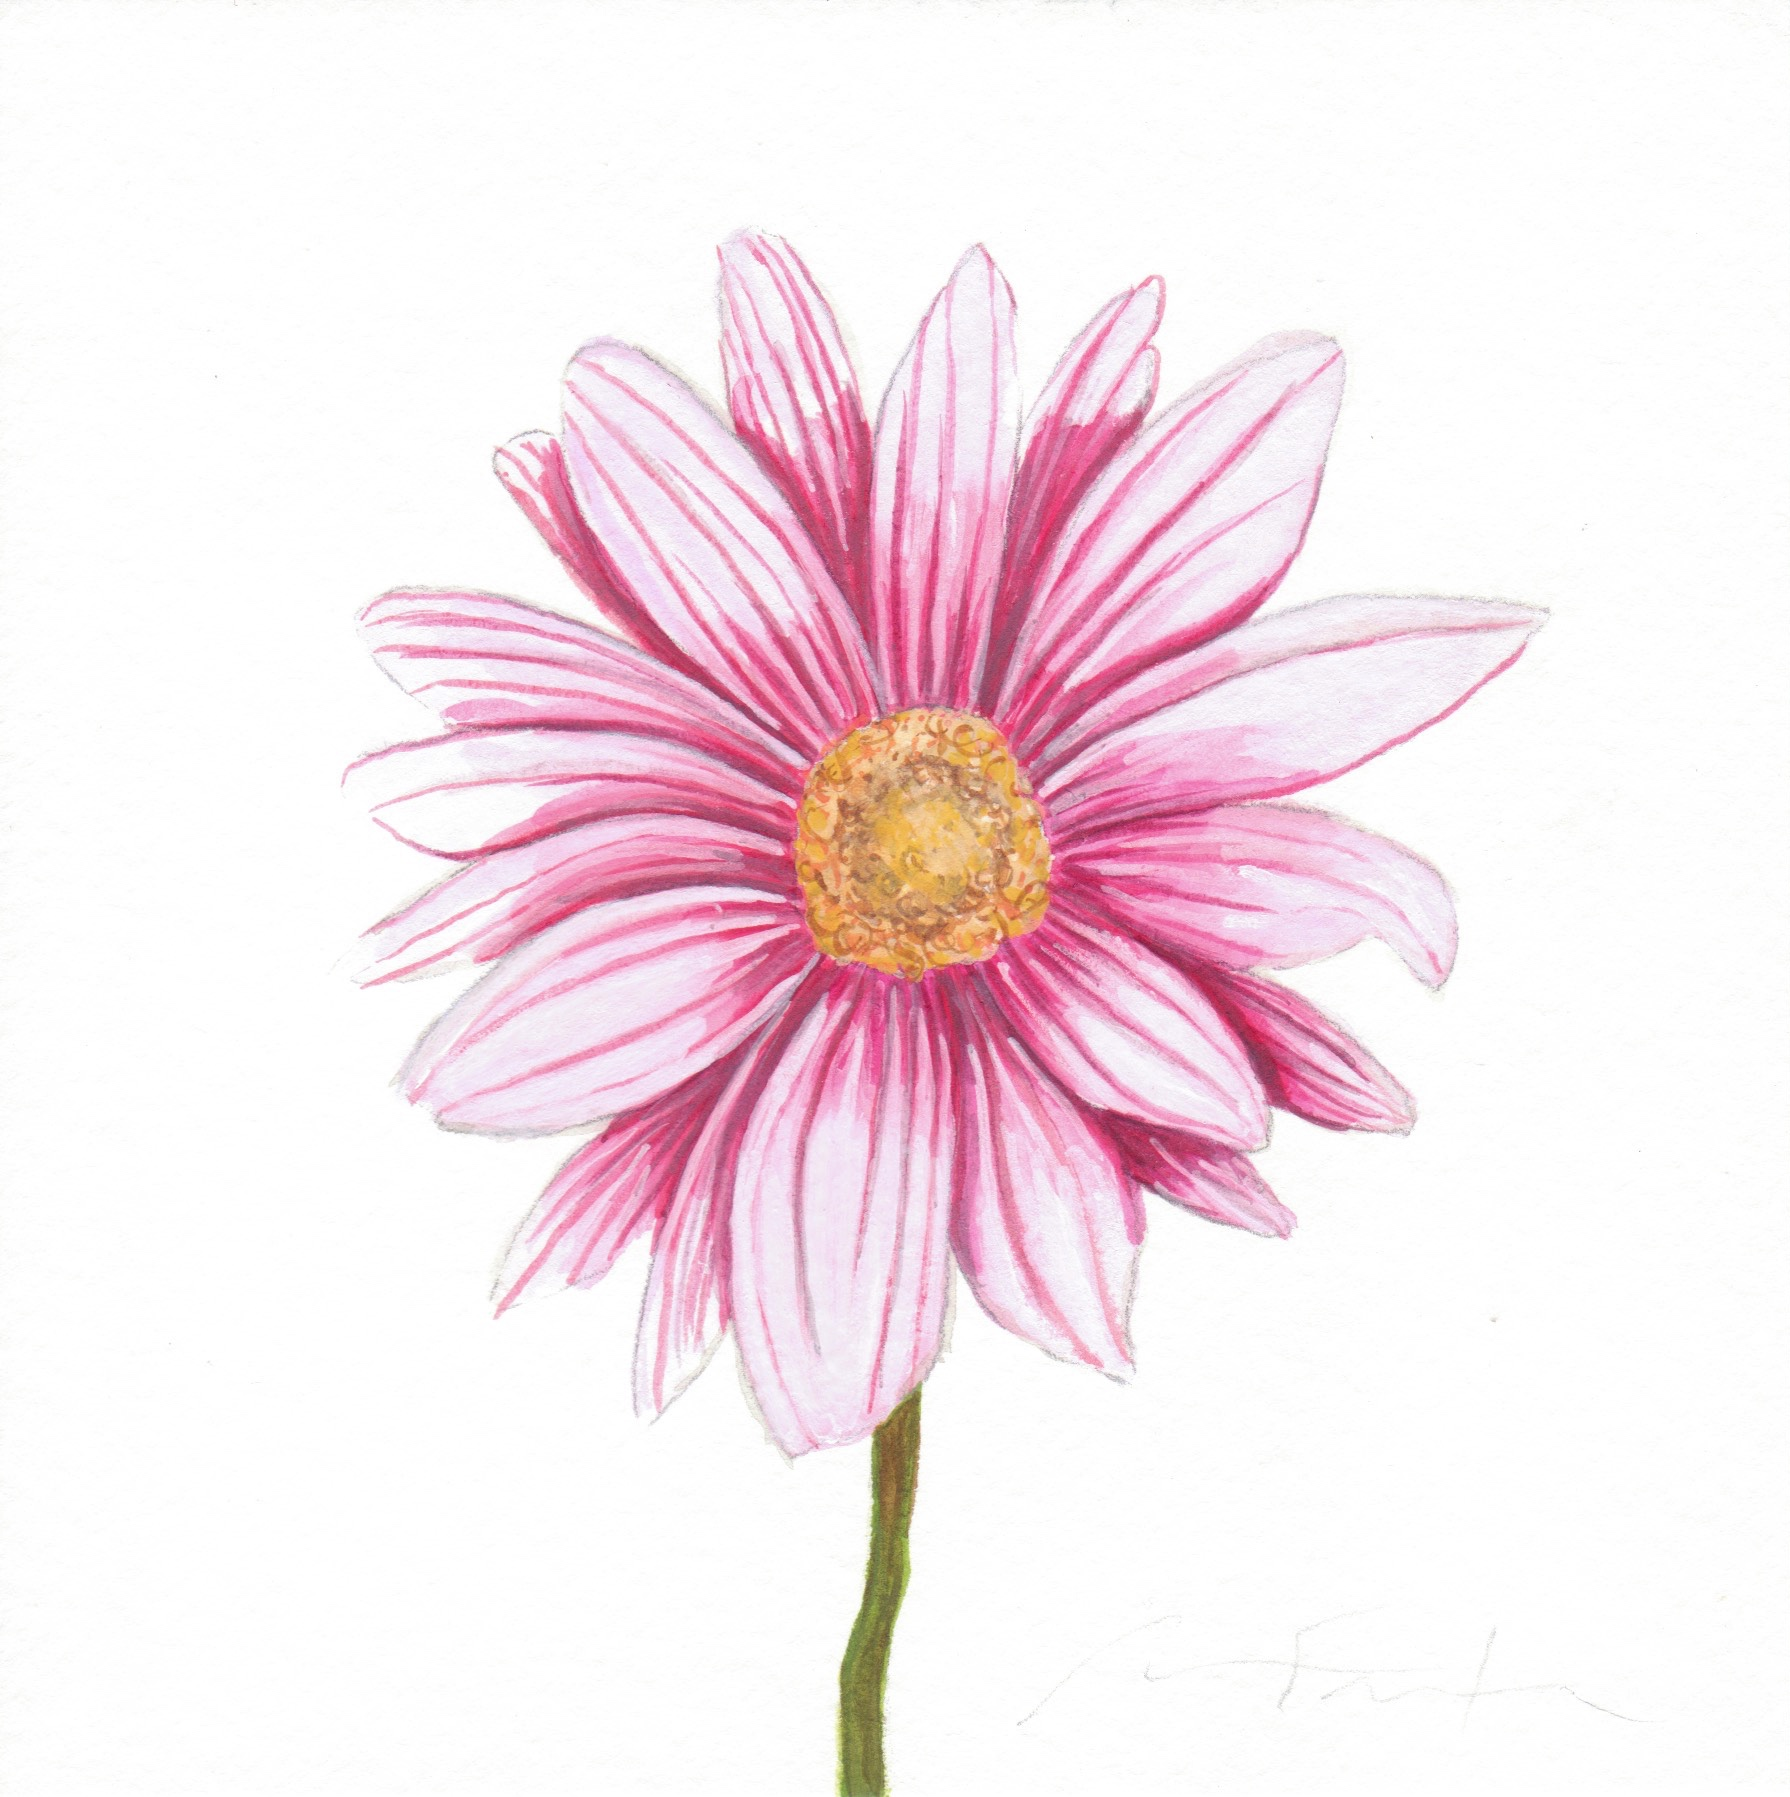 Pink flower watercolor study angela faustina angela faustina pink flower study 2015 watercolor on paper 6 by angela faustina pink flower study 2015 watercolor on paper 6 by mightylinksfo